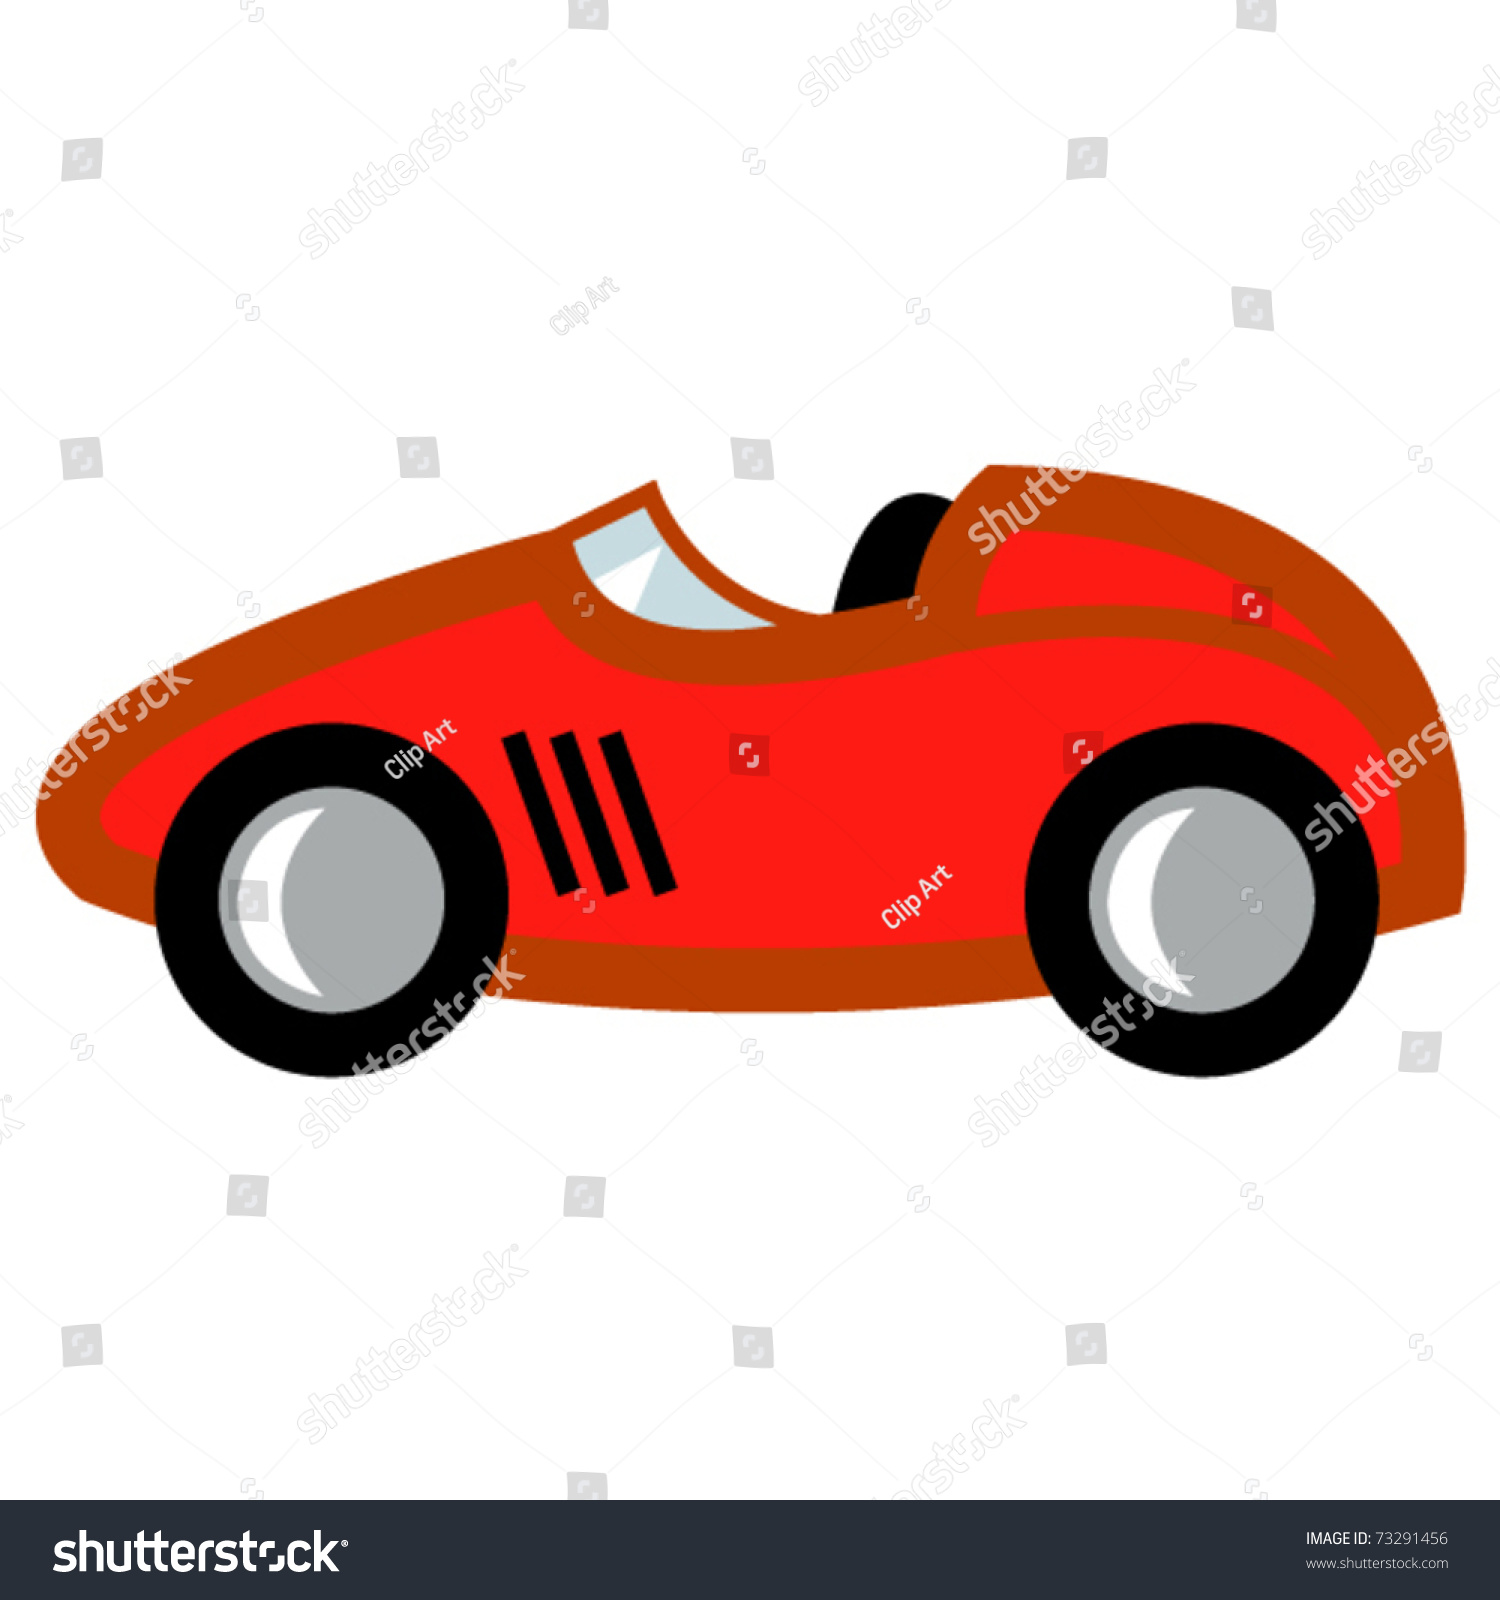 race car in cartoon style or child 39 s toy auto or. Black Bedroom Furniture Sets. Home Design Ideas